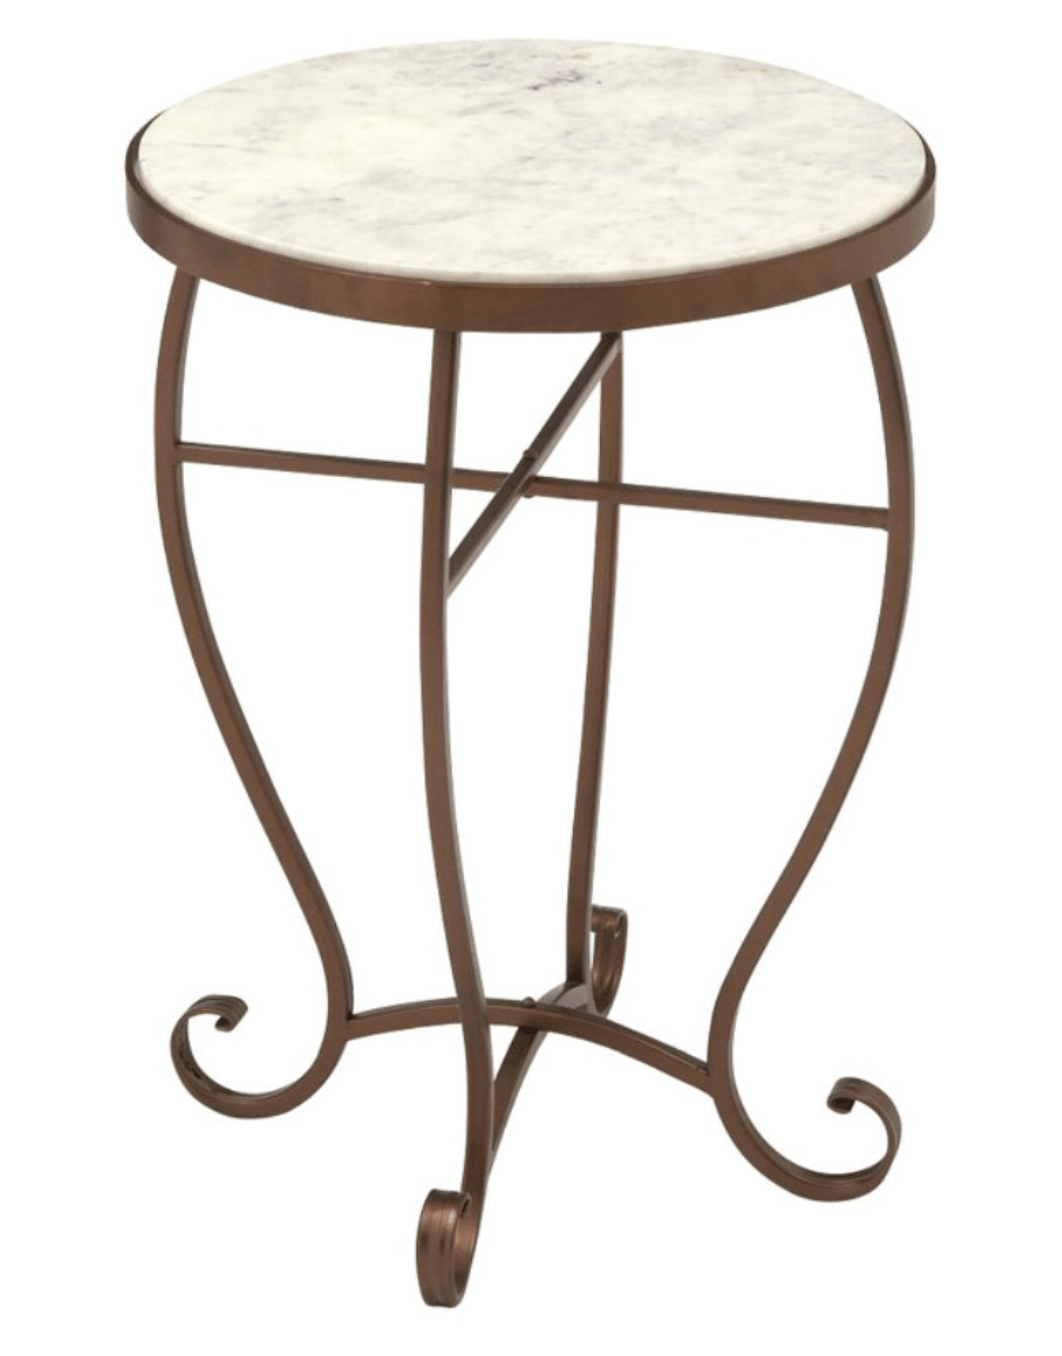 lovely small accent table for compact marble round min end tables top tall nesting kohls percent off coupon acacia dining lift coffee with storage drawers dog cot ikea masa ethan